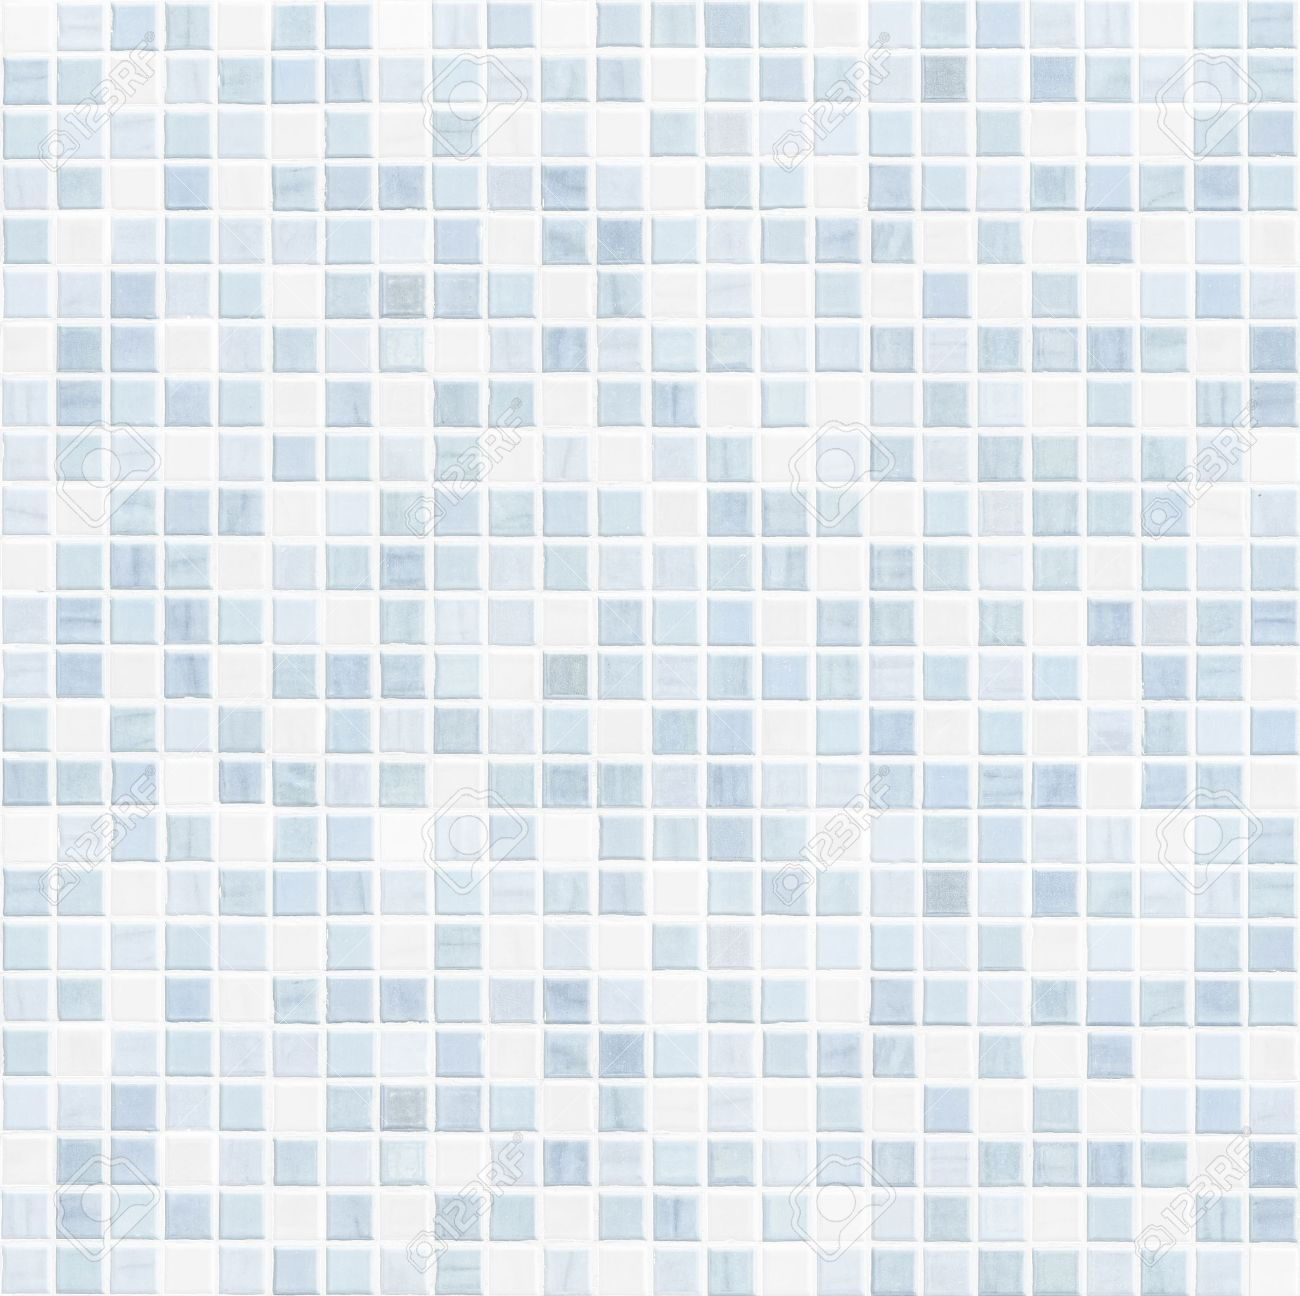 Blue Tile Wall High Resolution Ceramic Tile Bathroom Wall Stock ...